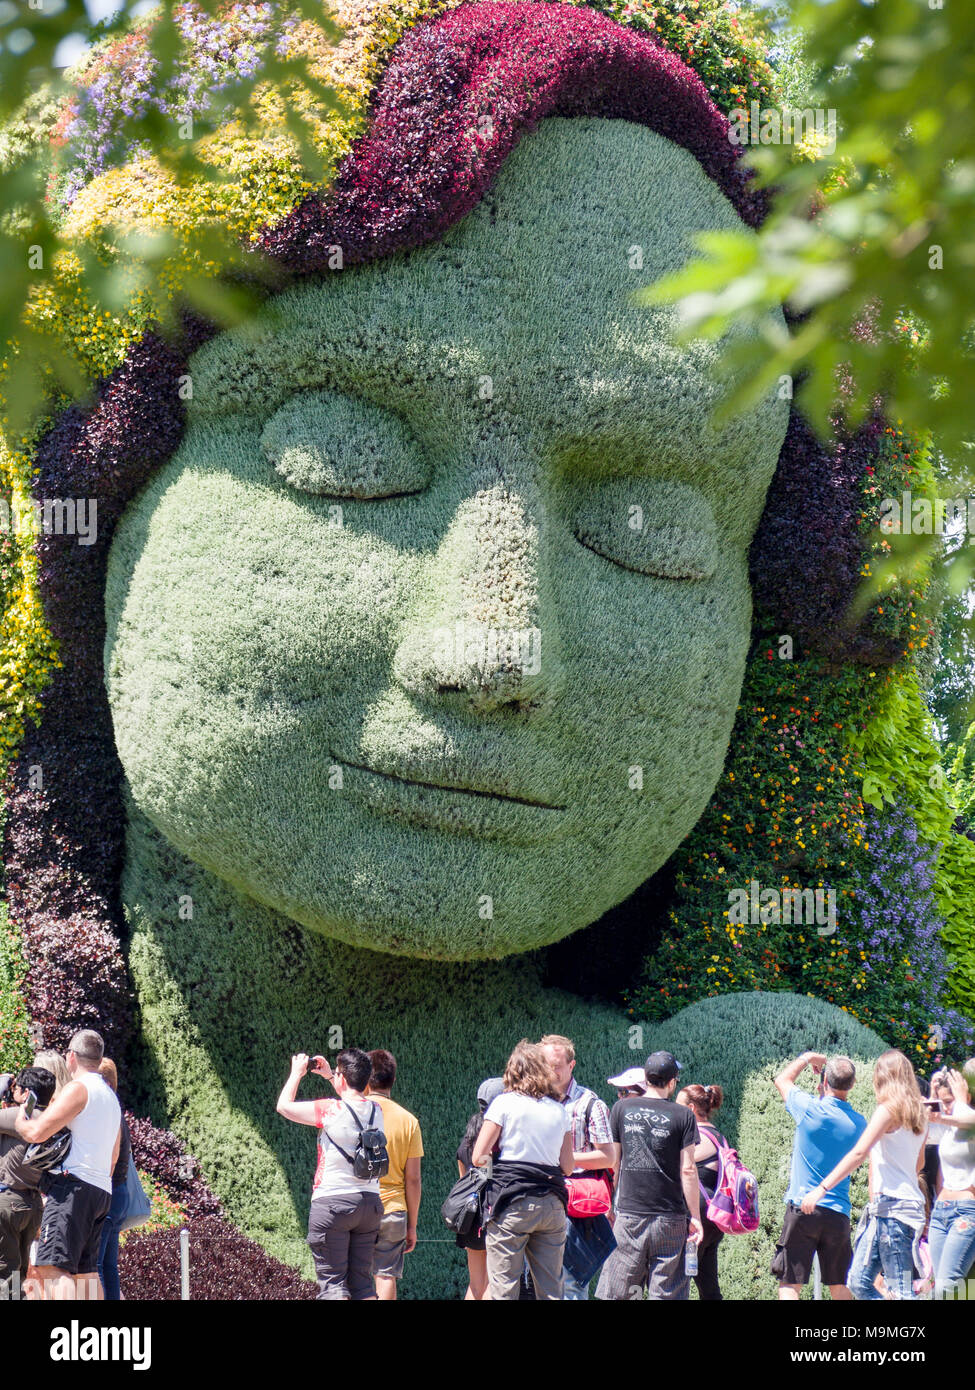 Mother Earth and Tourists: A huge plant-based sculpture of the face of Mother Earth with a gaggle of photographing tourists in front at MosaiCanada 150. - Stock Image